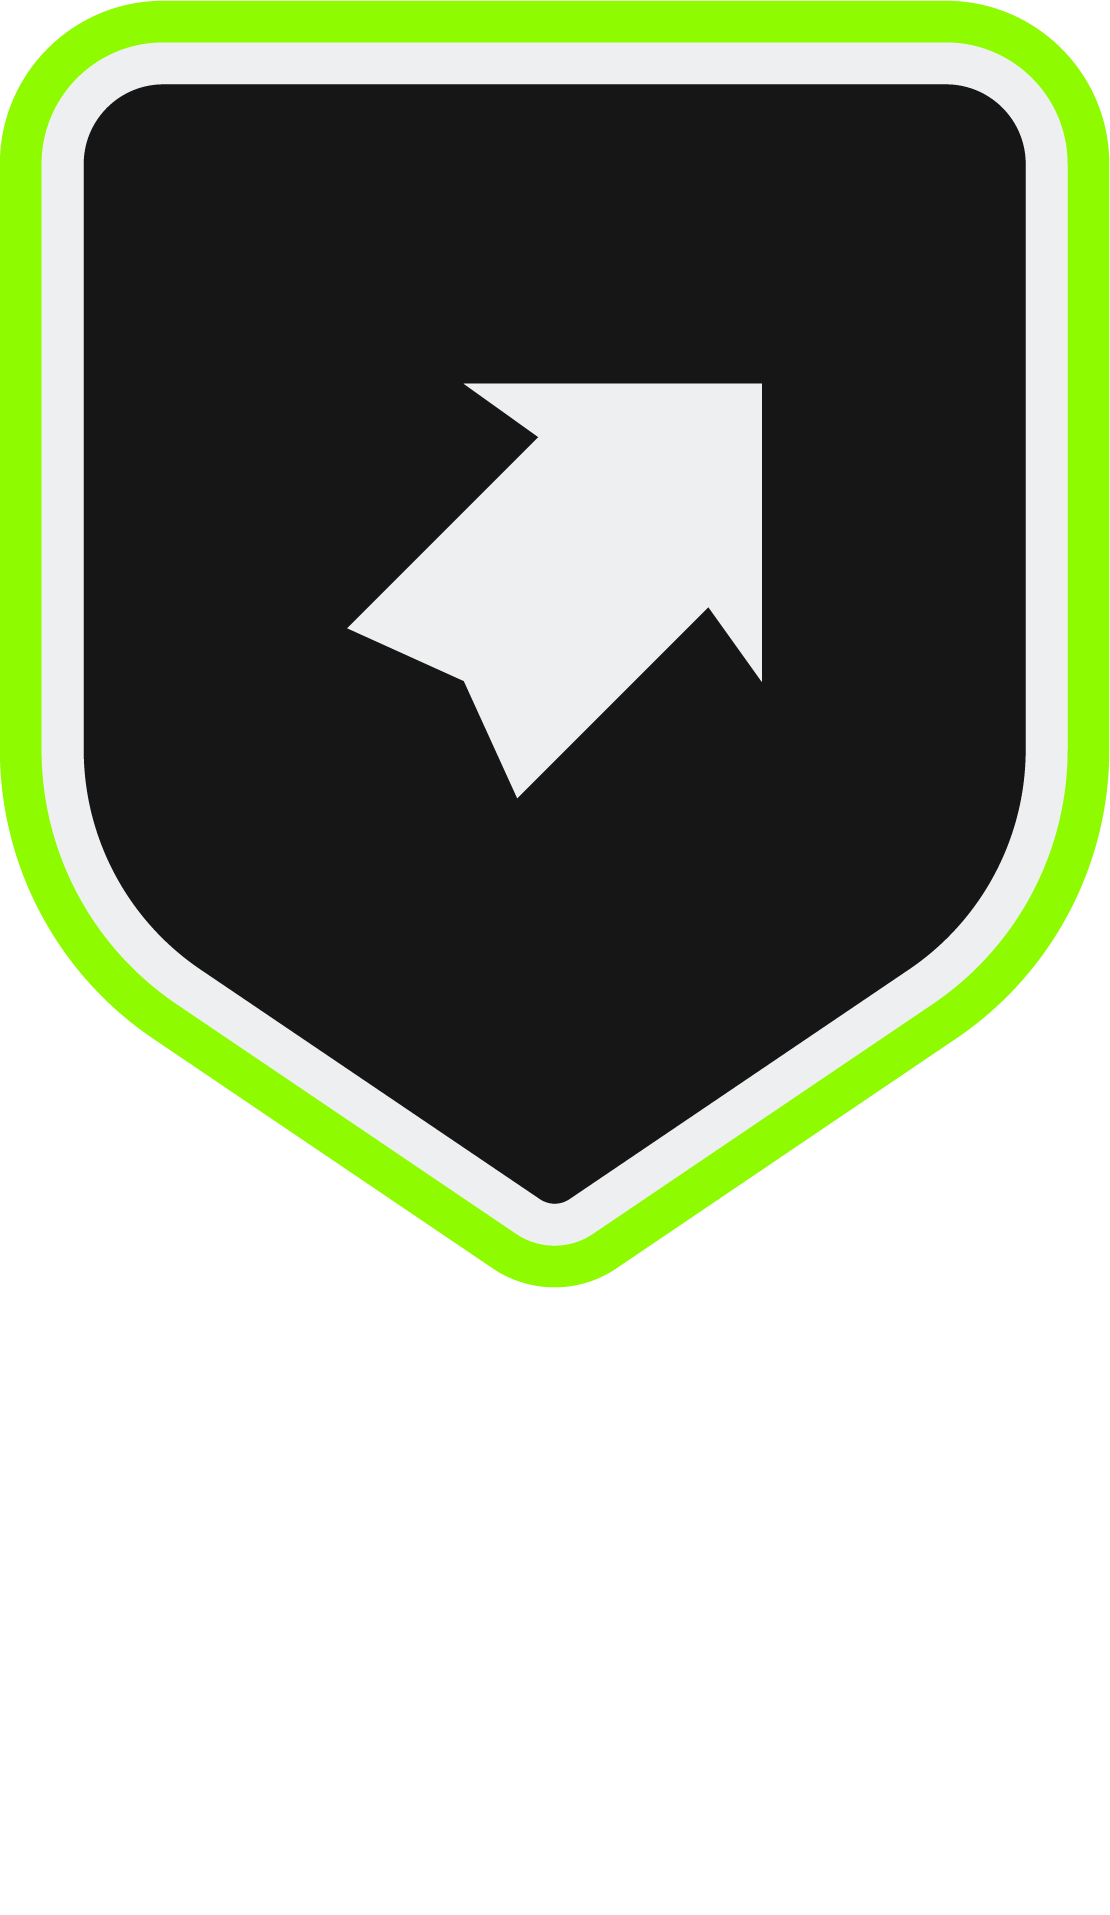 Rise Up - Week 2